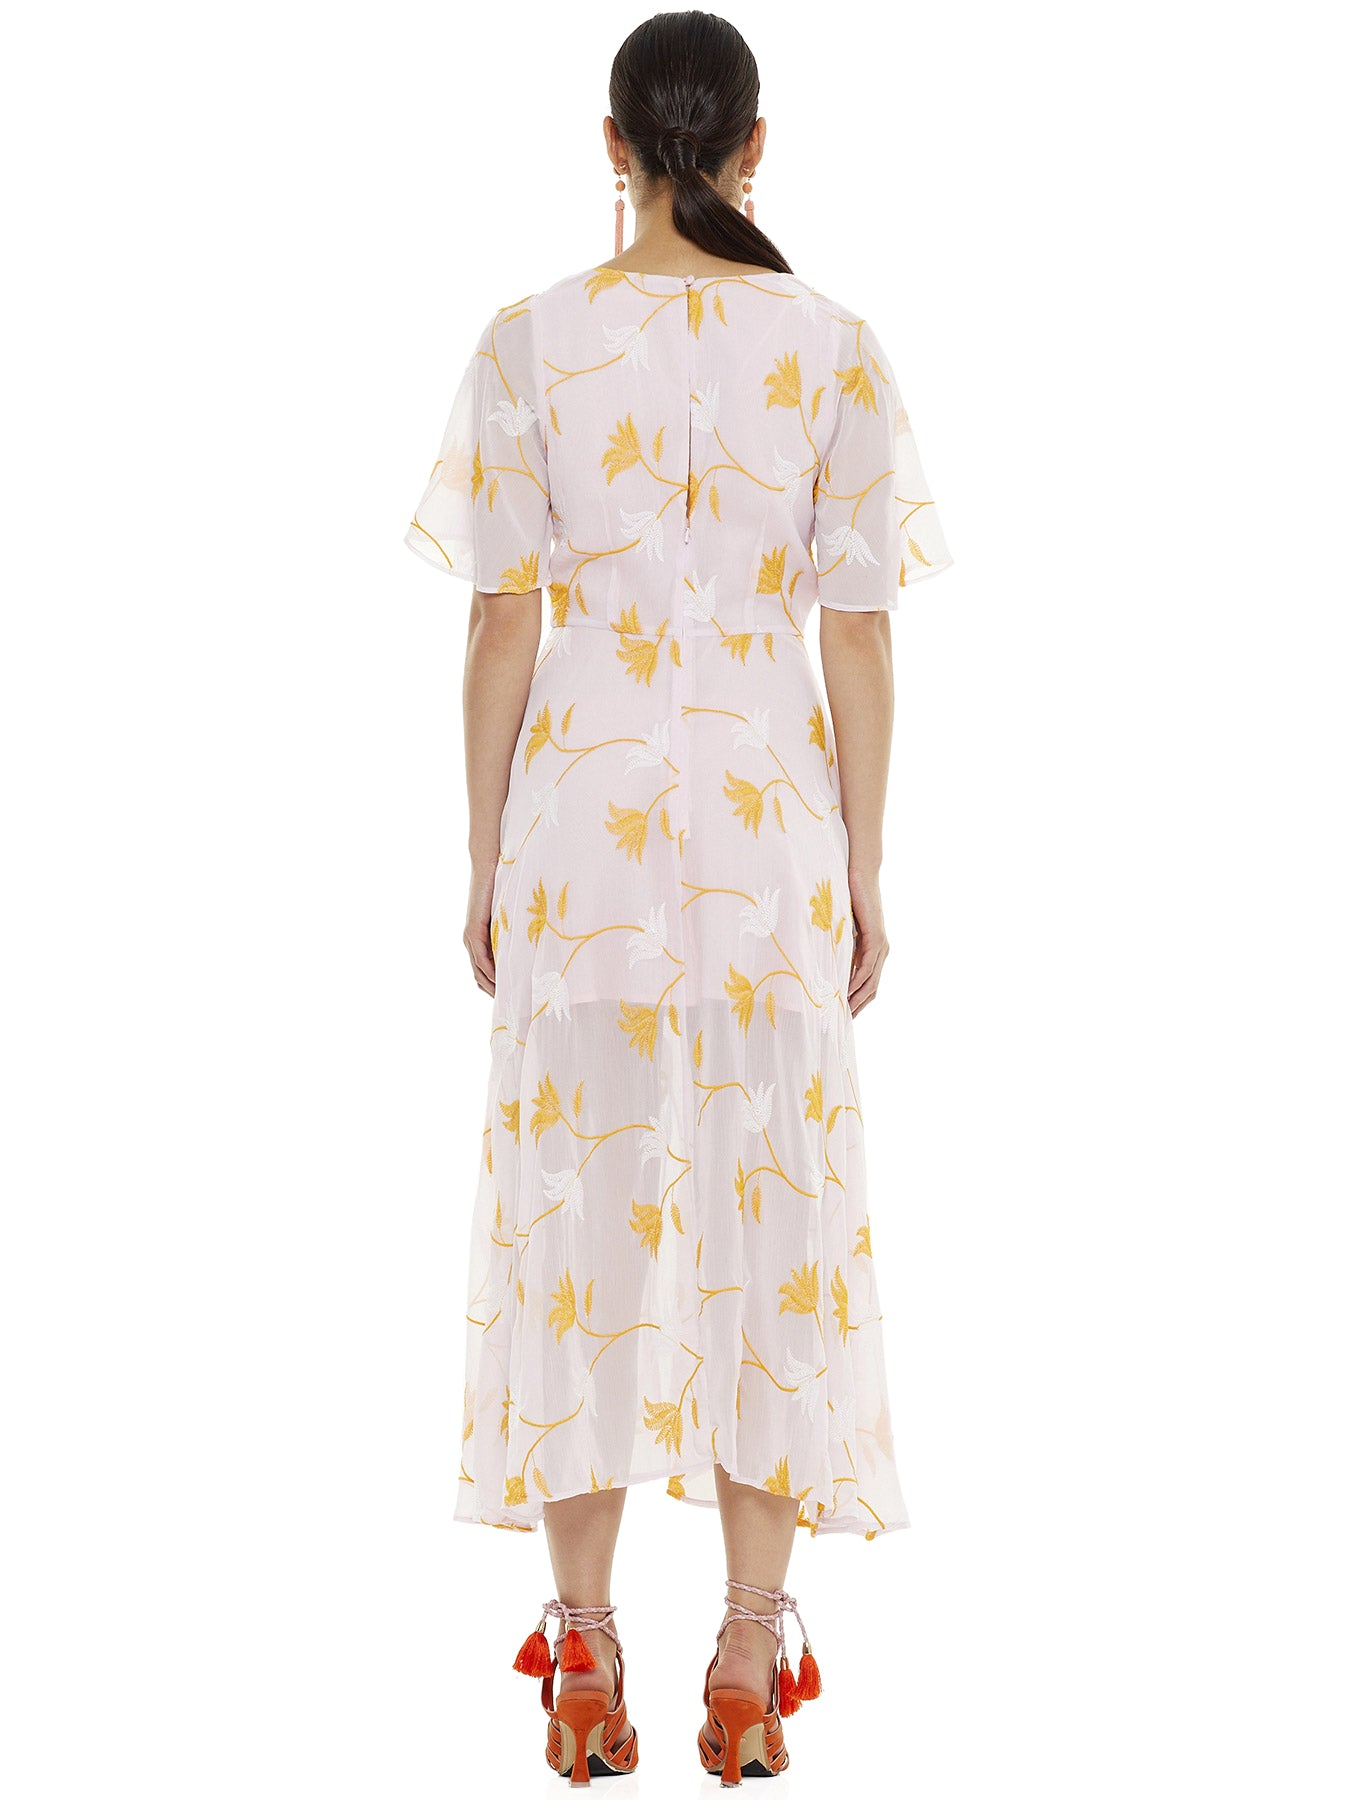 HEY BABY EMBROIDERY MIDI DRESS